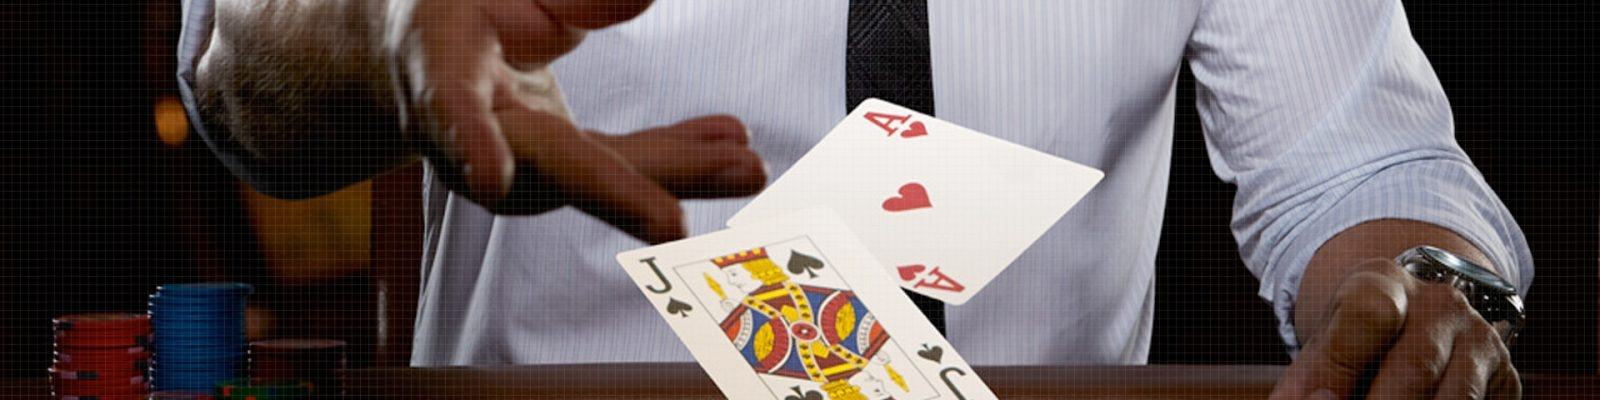 Legal NJ Casinos (@legalnjcasinos) Cover Image